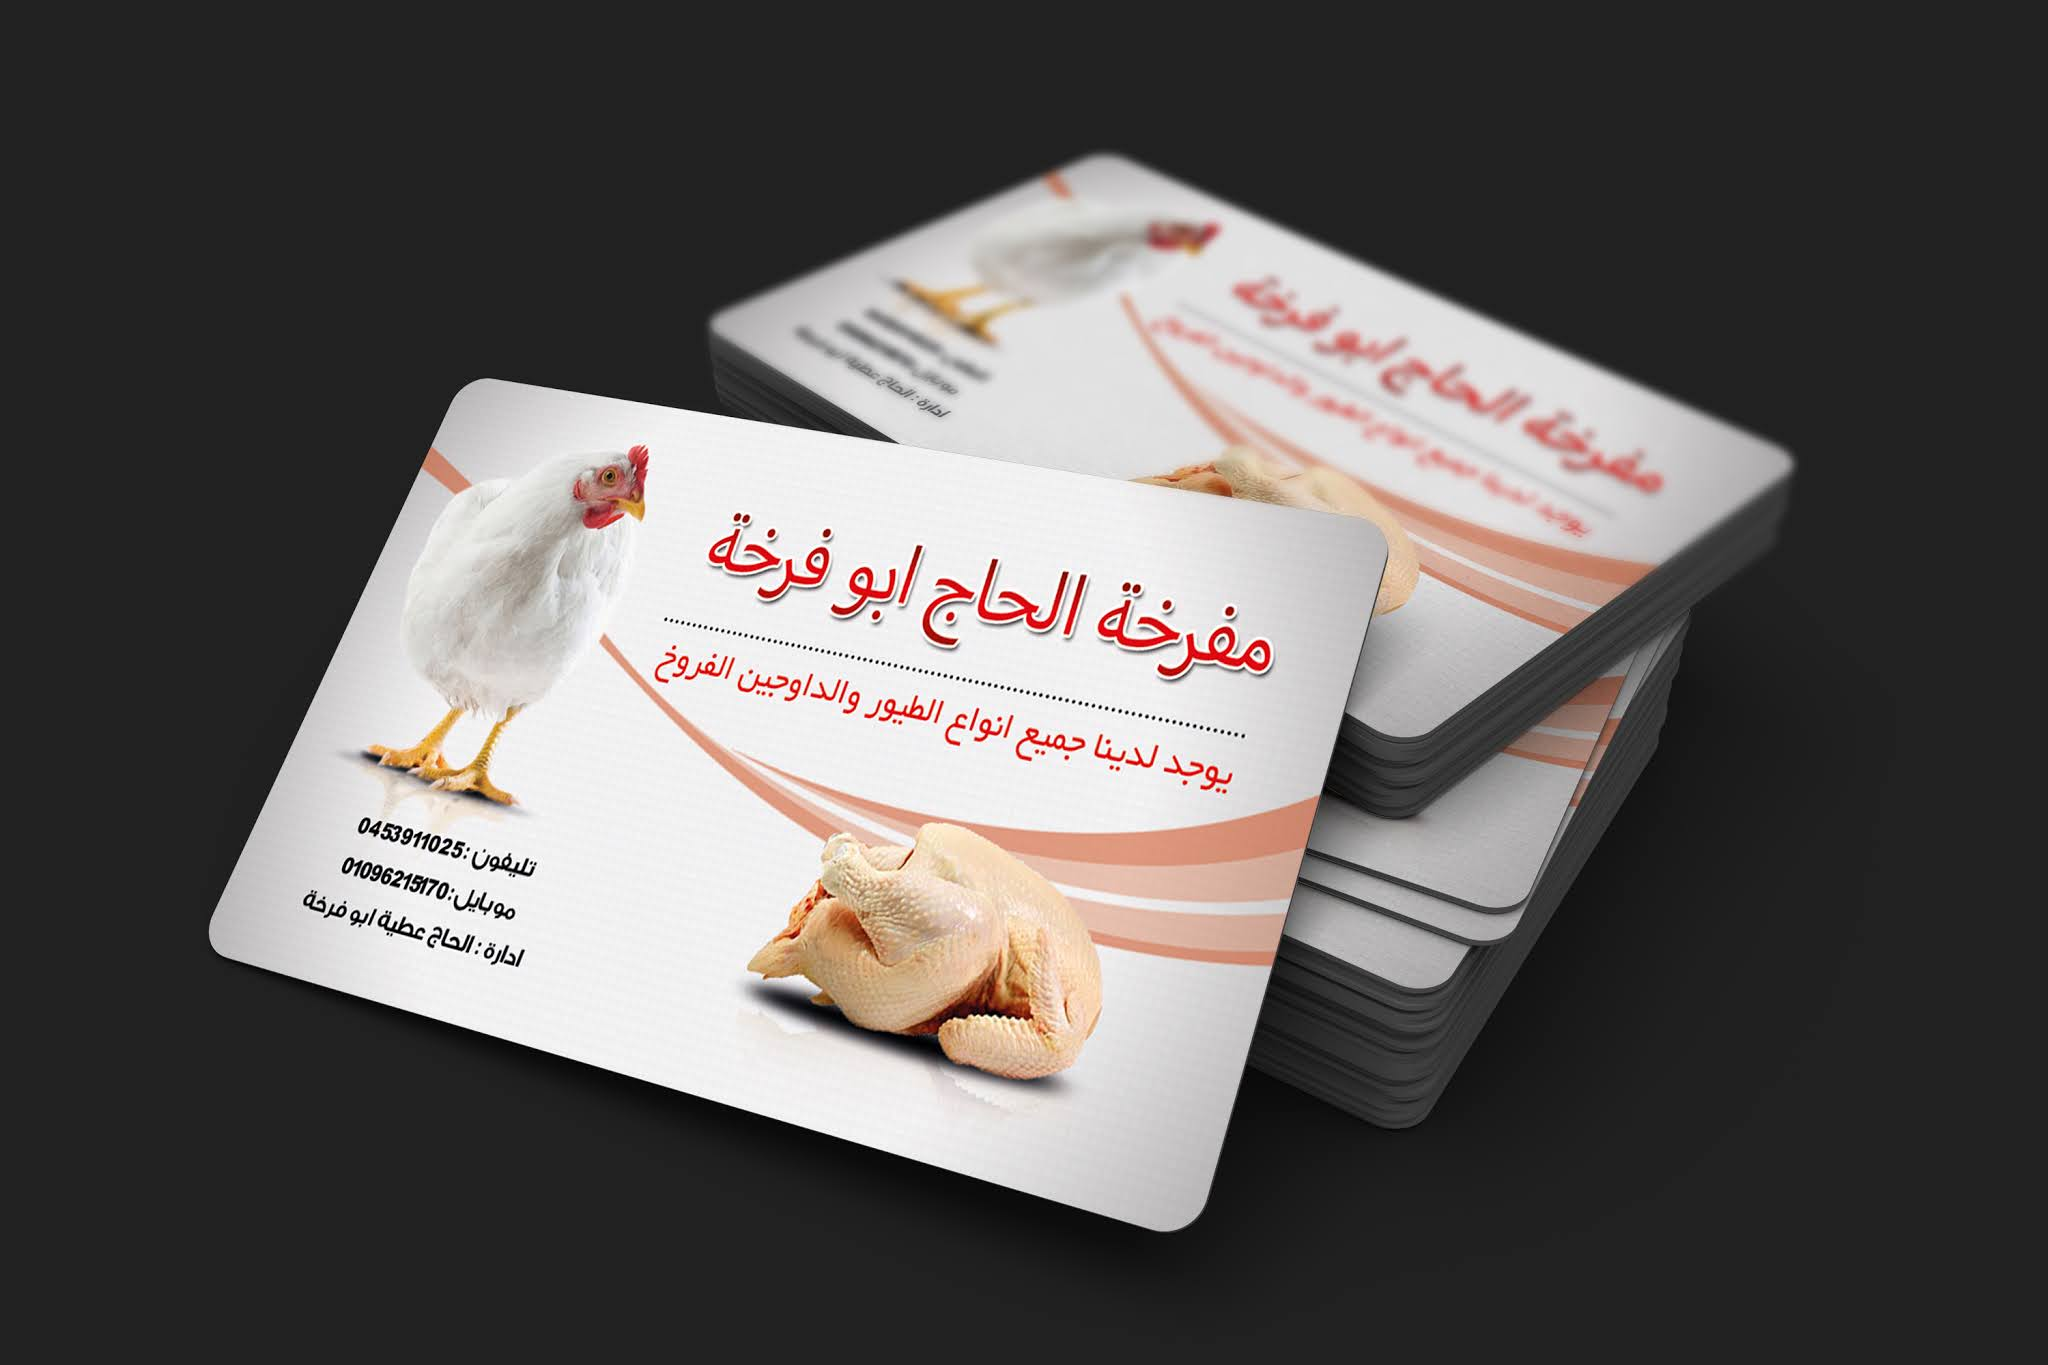 Personal Card Psd Business Card Professional PSD Free Download Sale of Chicks and Poultry